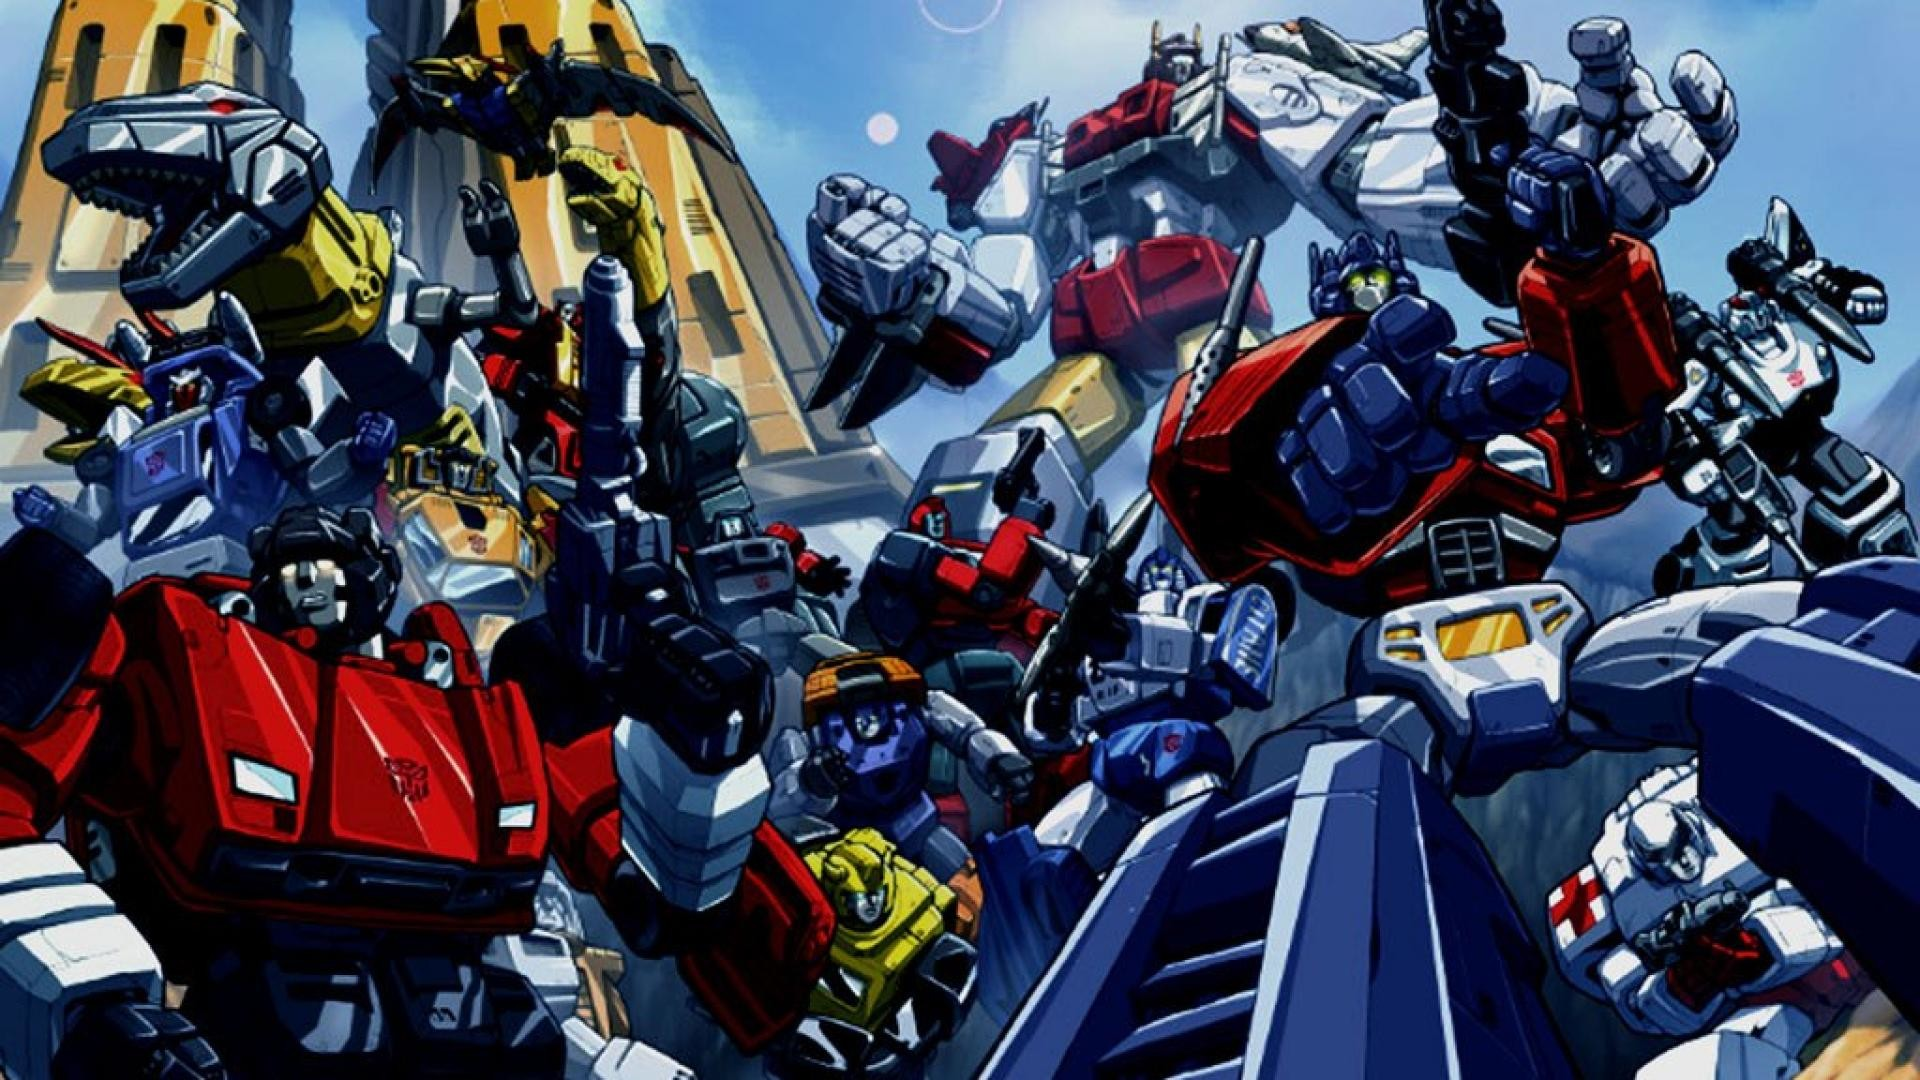 Transformers G1 Wallpapers 59 Images